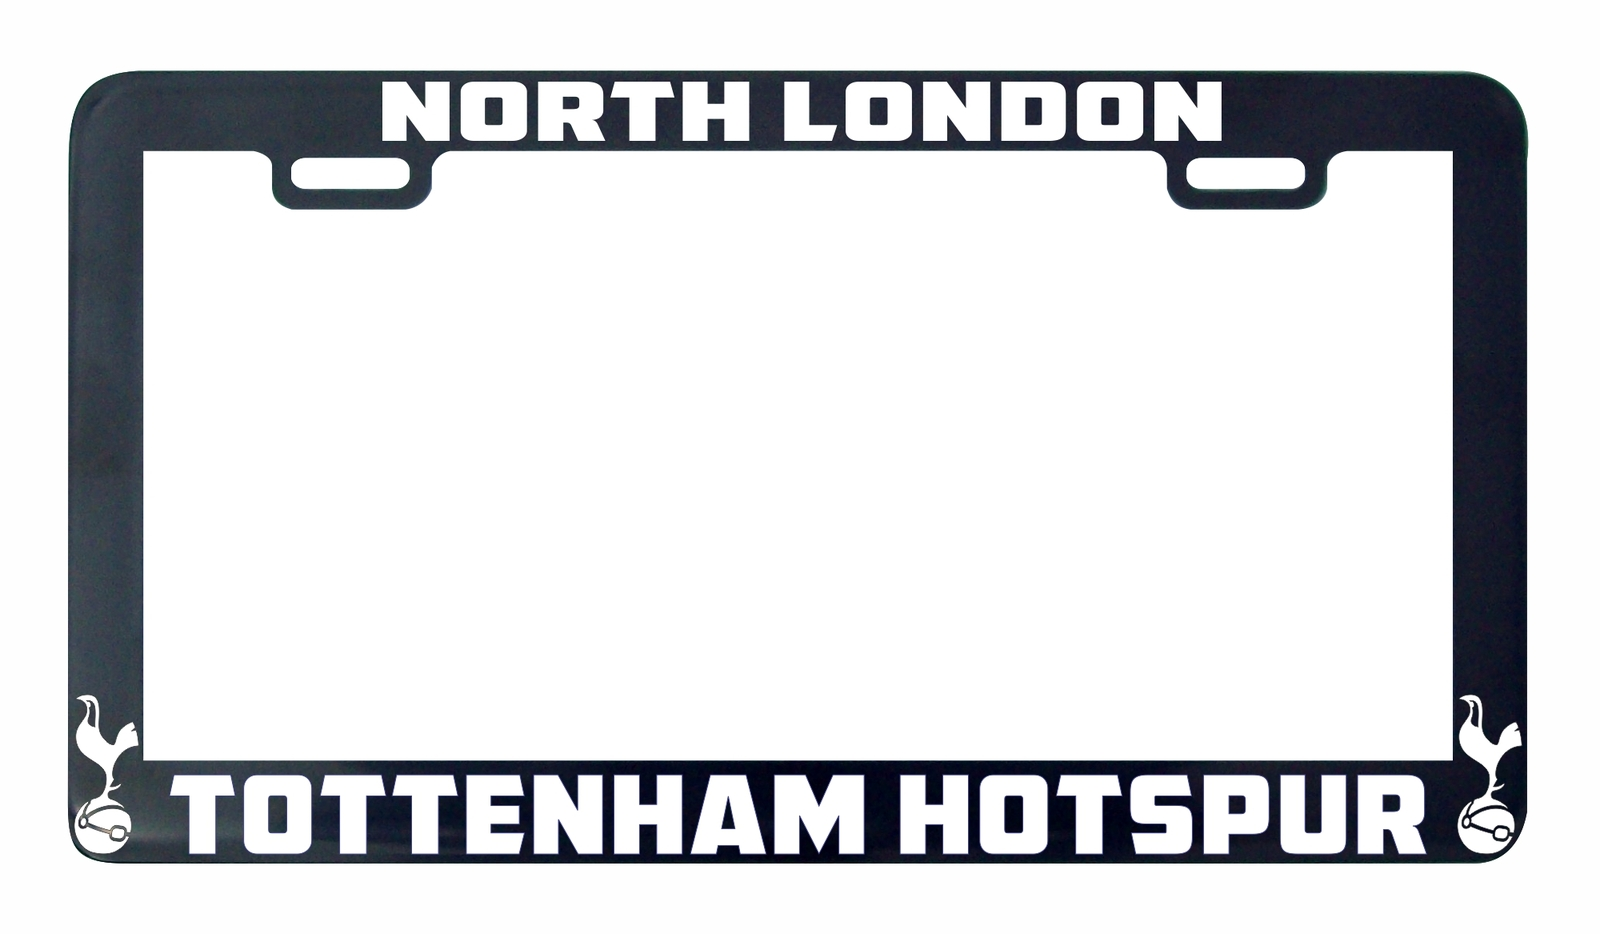 Primary image for Tottenham Hotspur North London  soccer futbol license plate frame holder tag